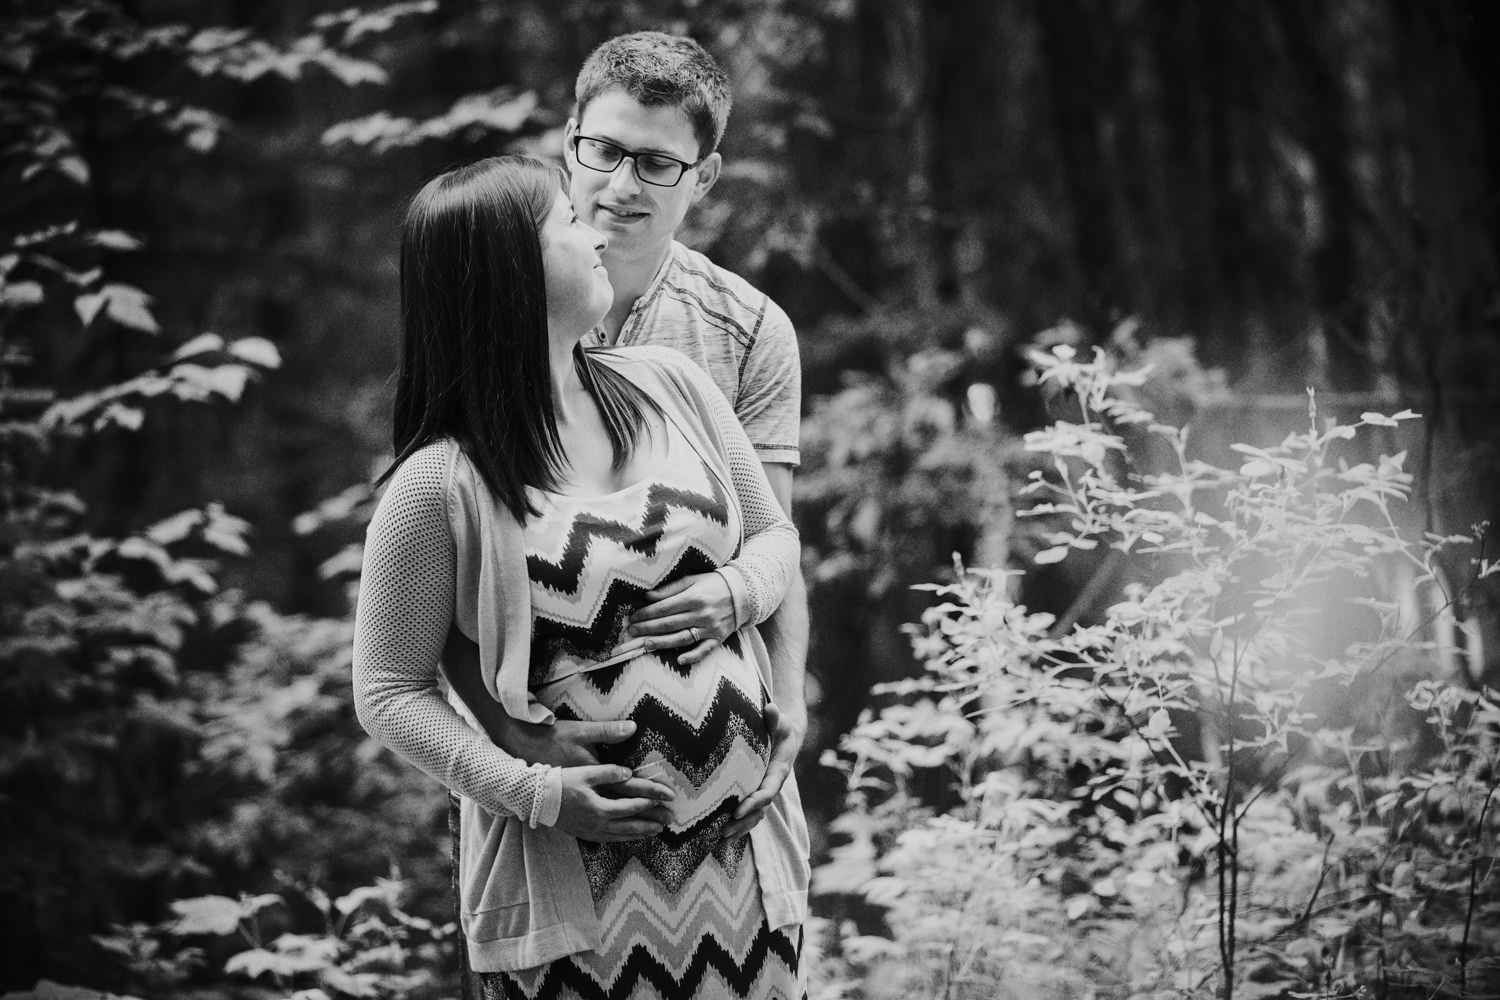 quesnel-bc-ten-mile-lake-maternity-session-quesnel-maternity-photographer-kelowna-maternity-photographers-okanagan-meternity-photographer (11 of 32).jpg